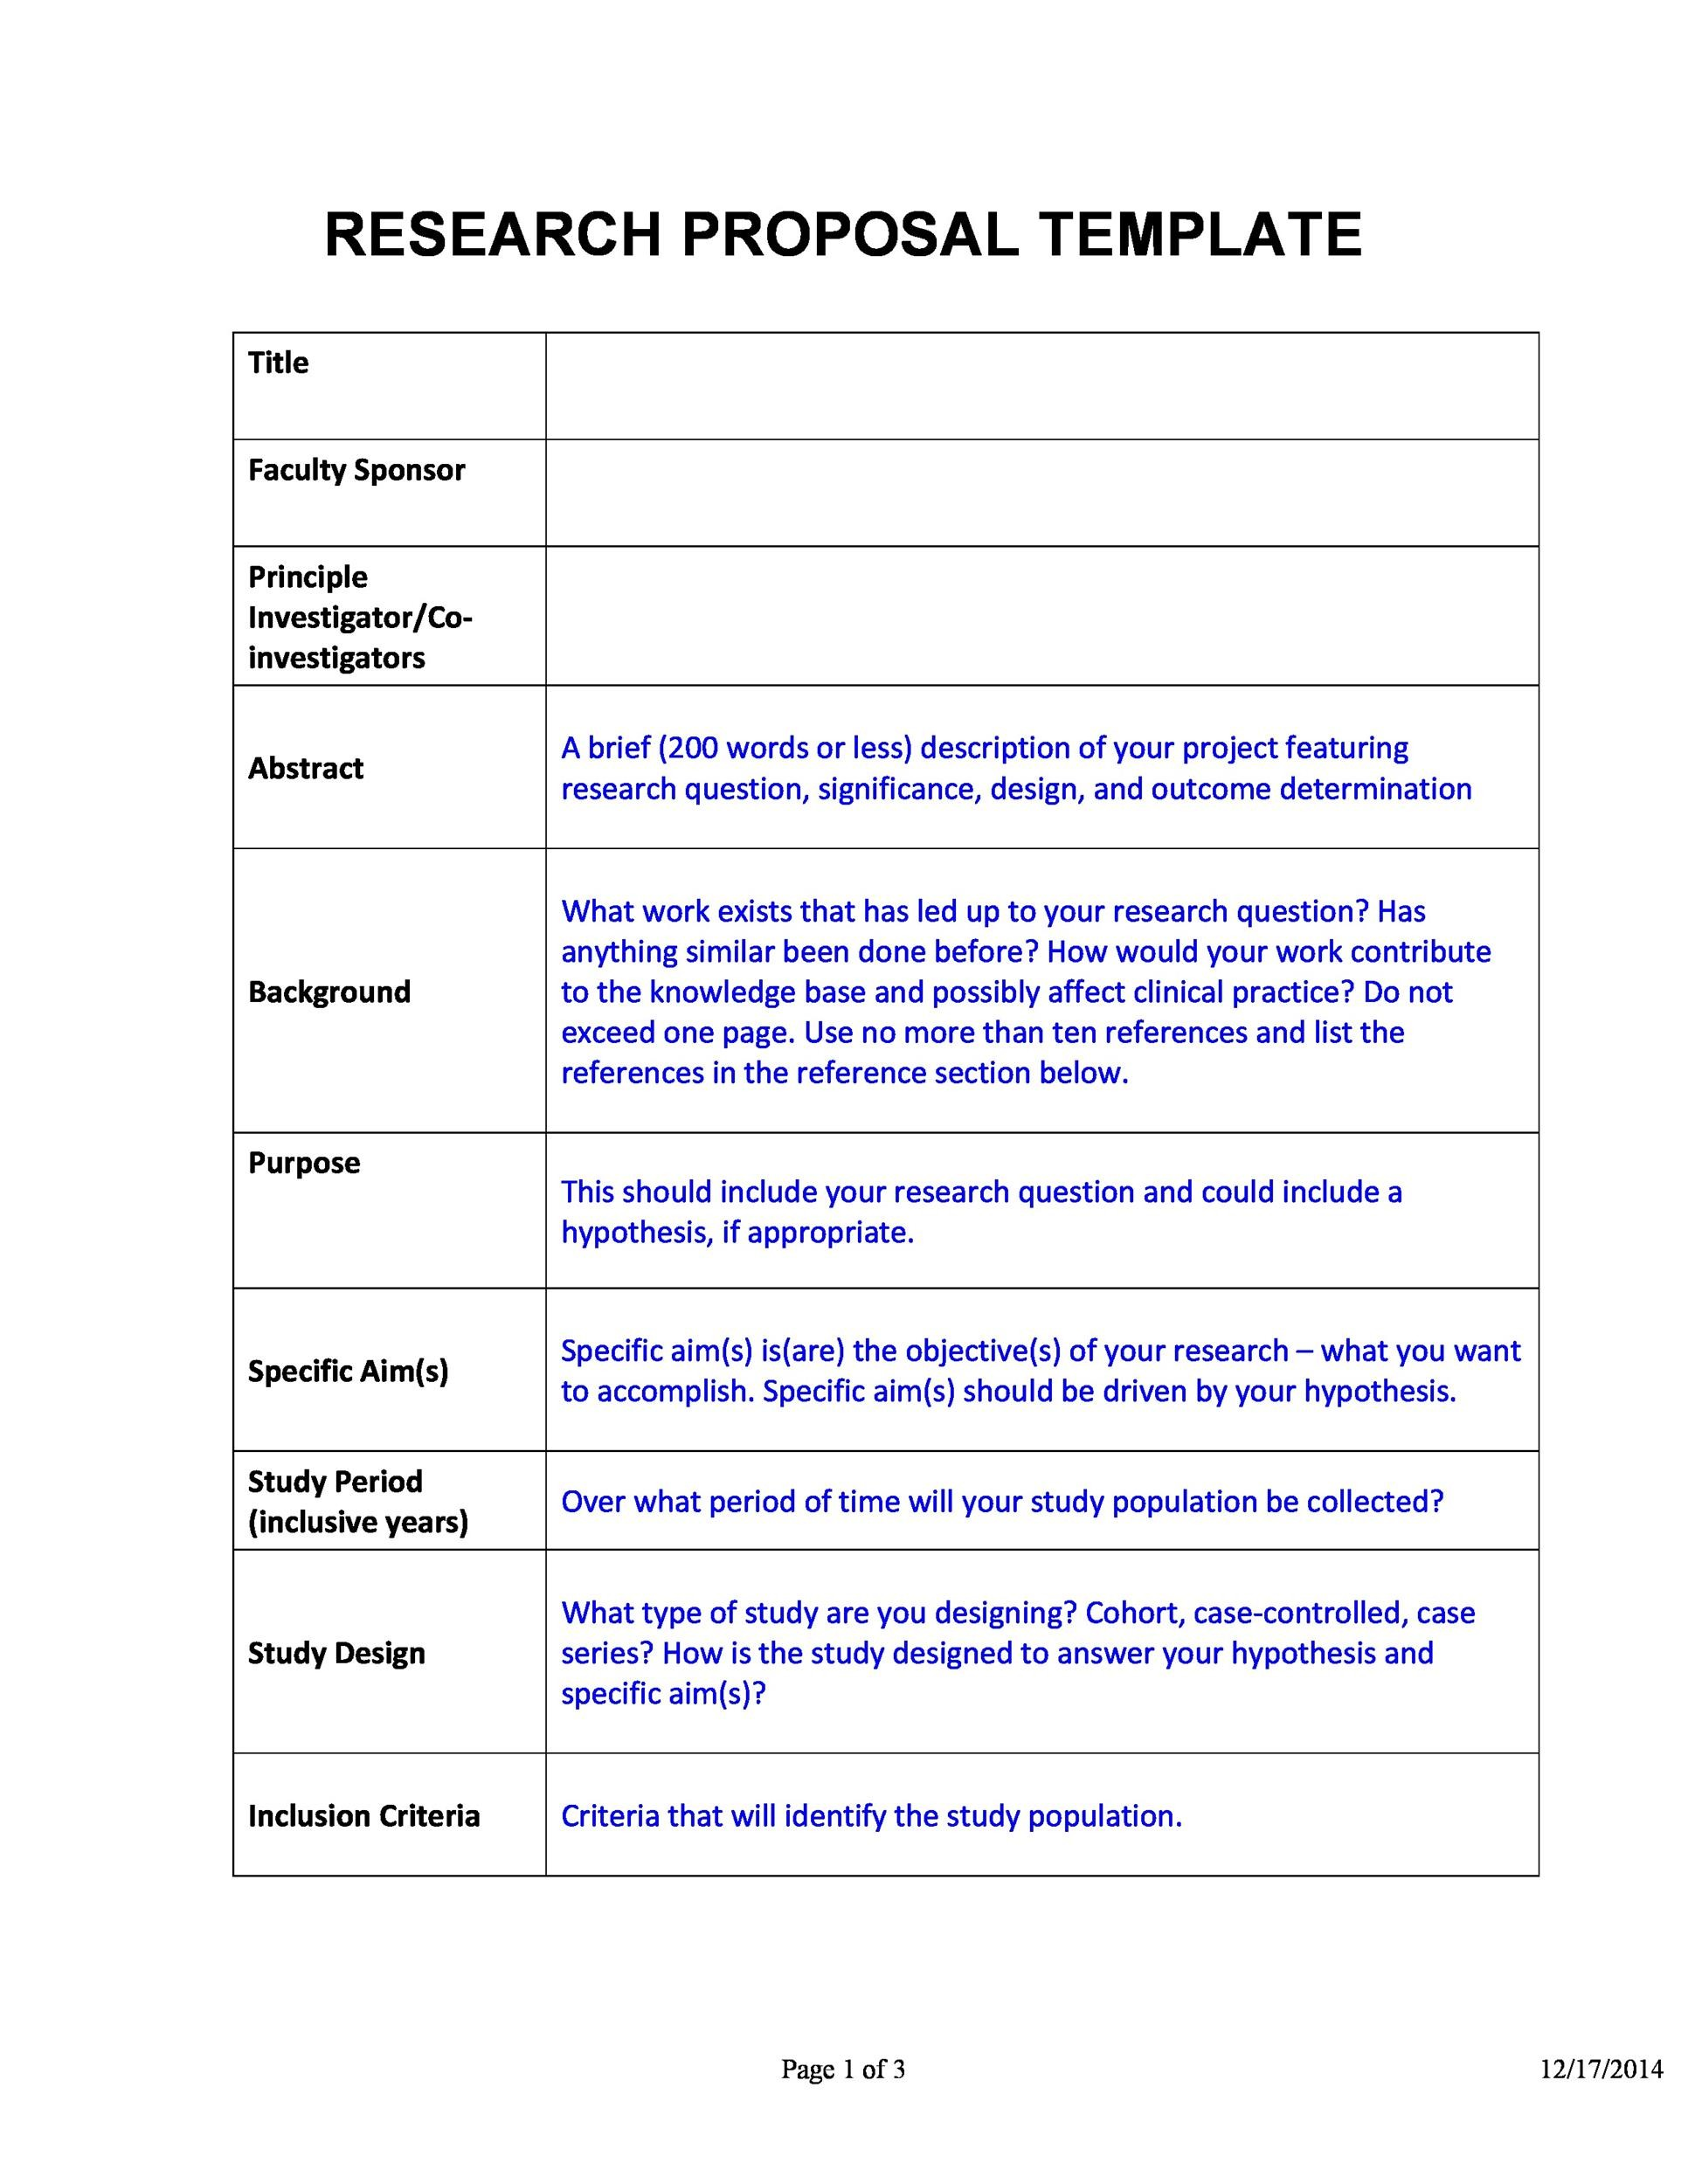 research design plan template  Choose from 40 Research Proposal Templates & Examples. 100 ..